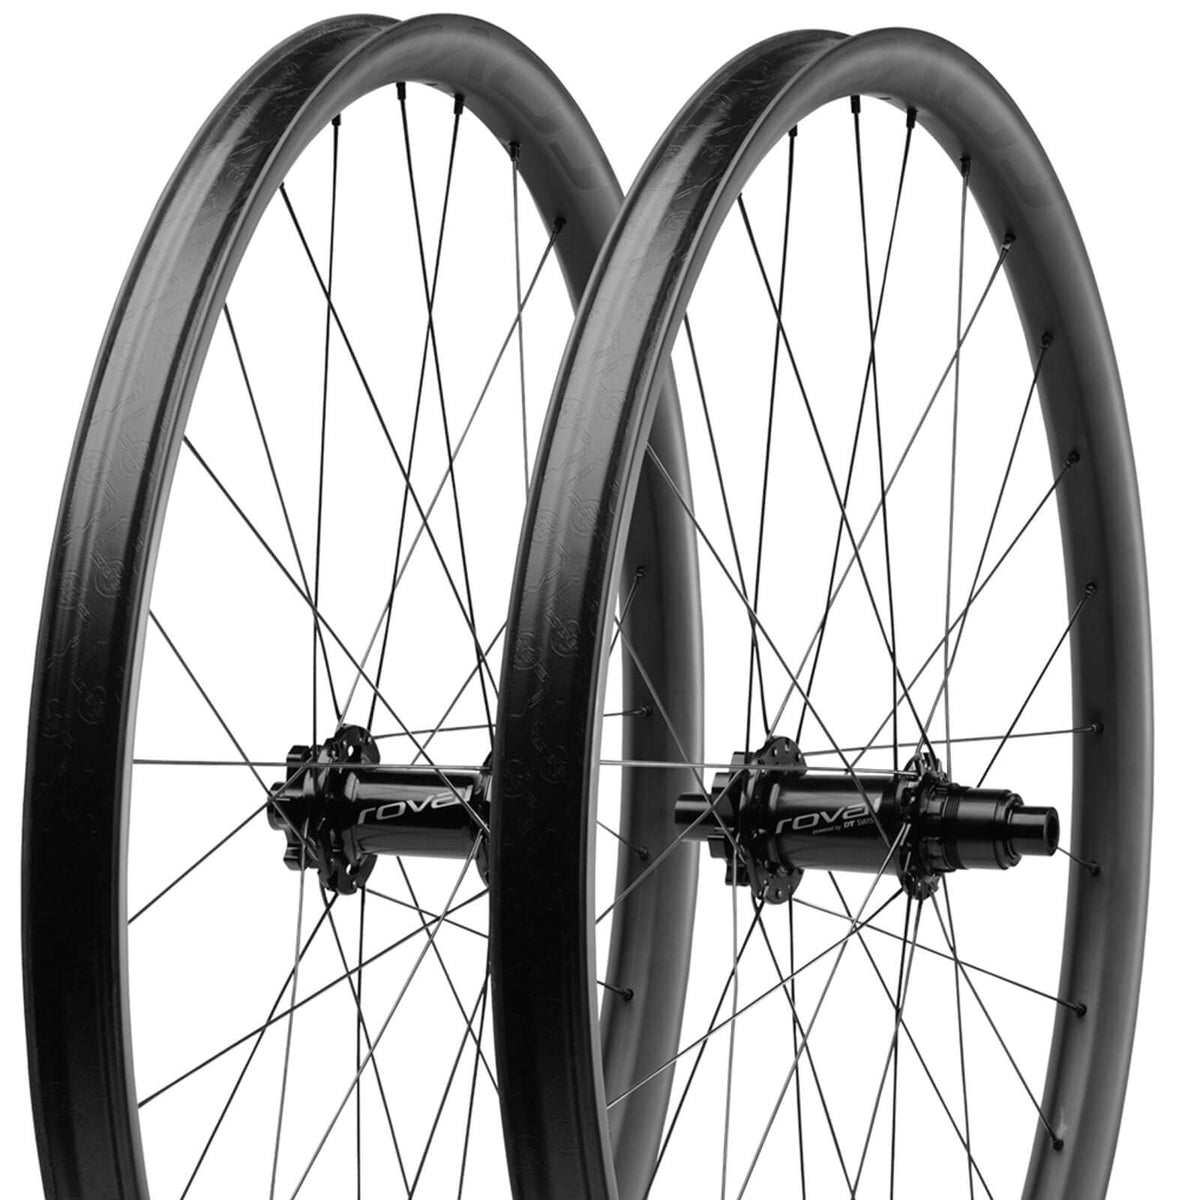 Traverse Sl Roval Components